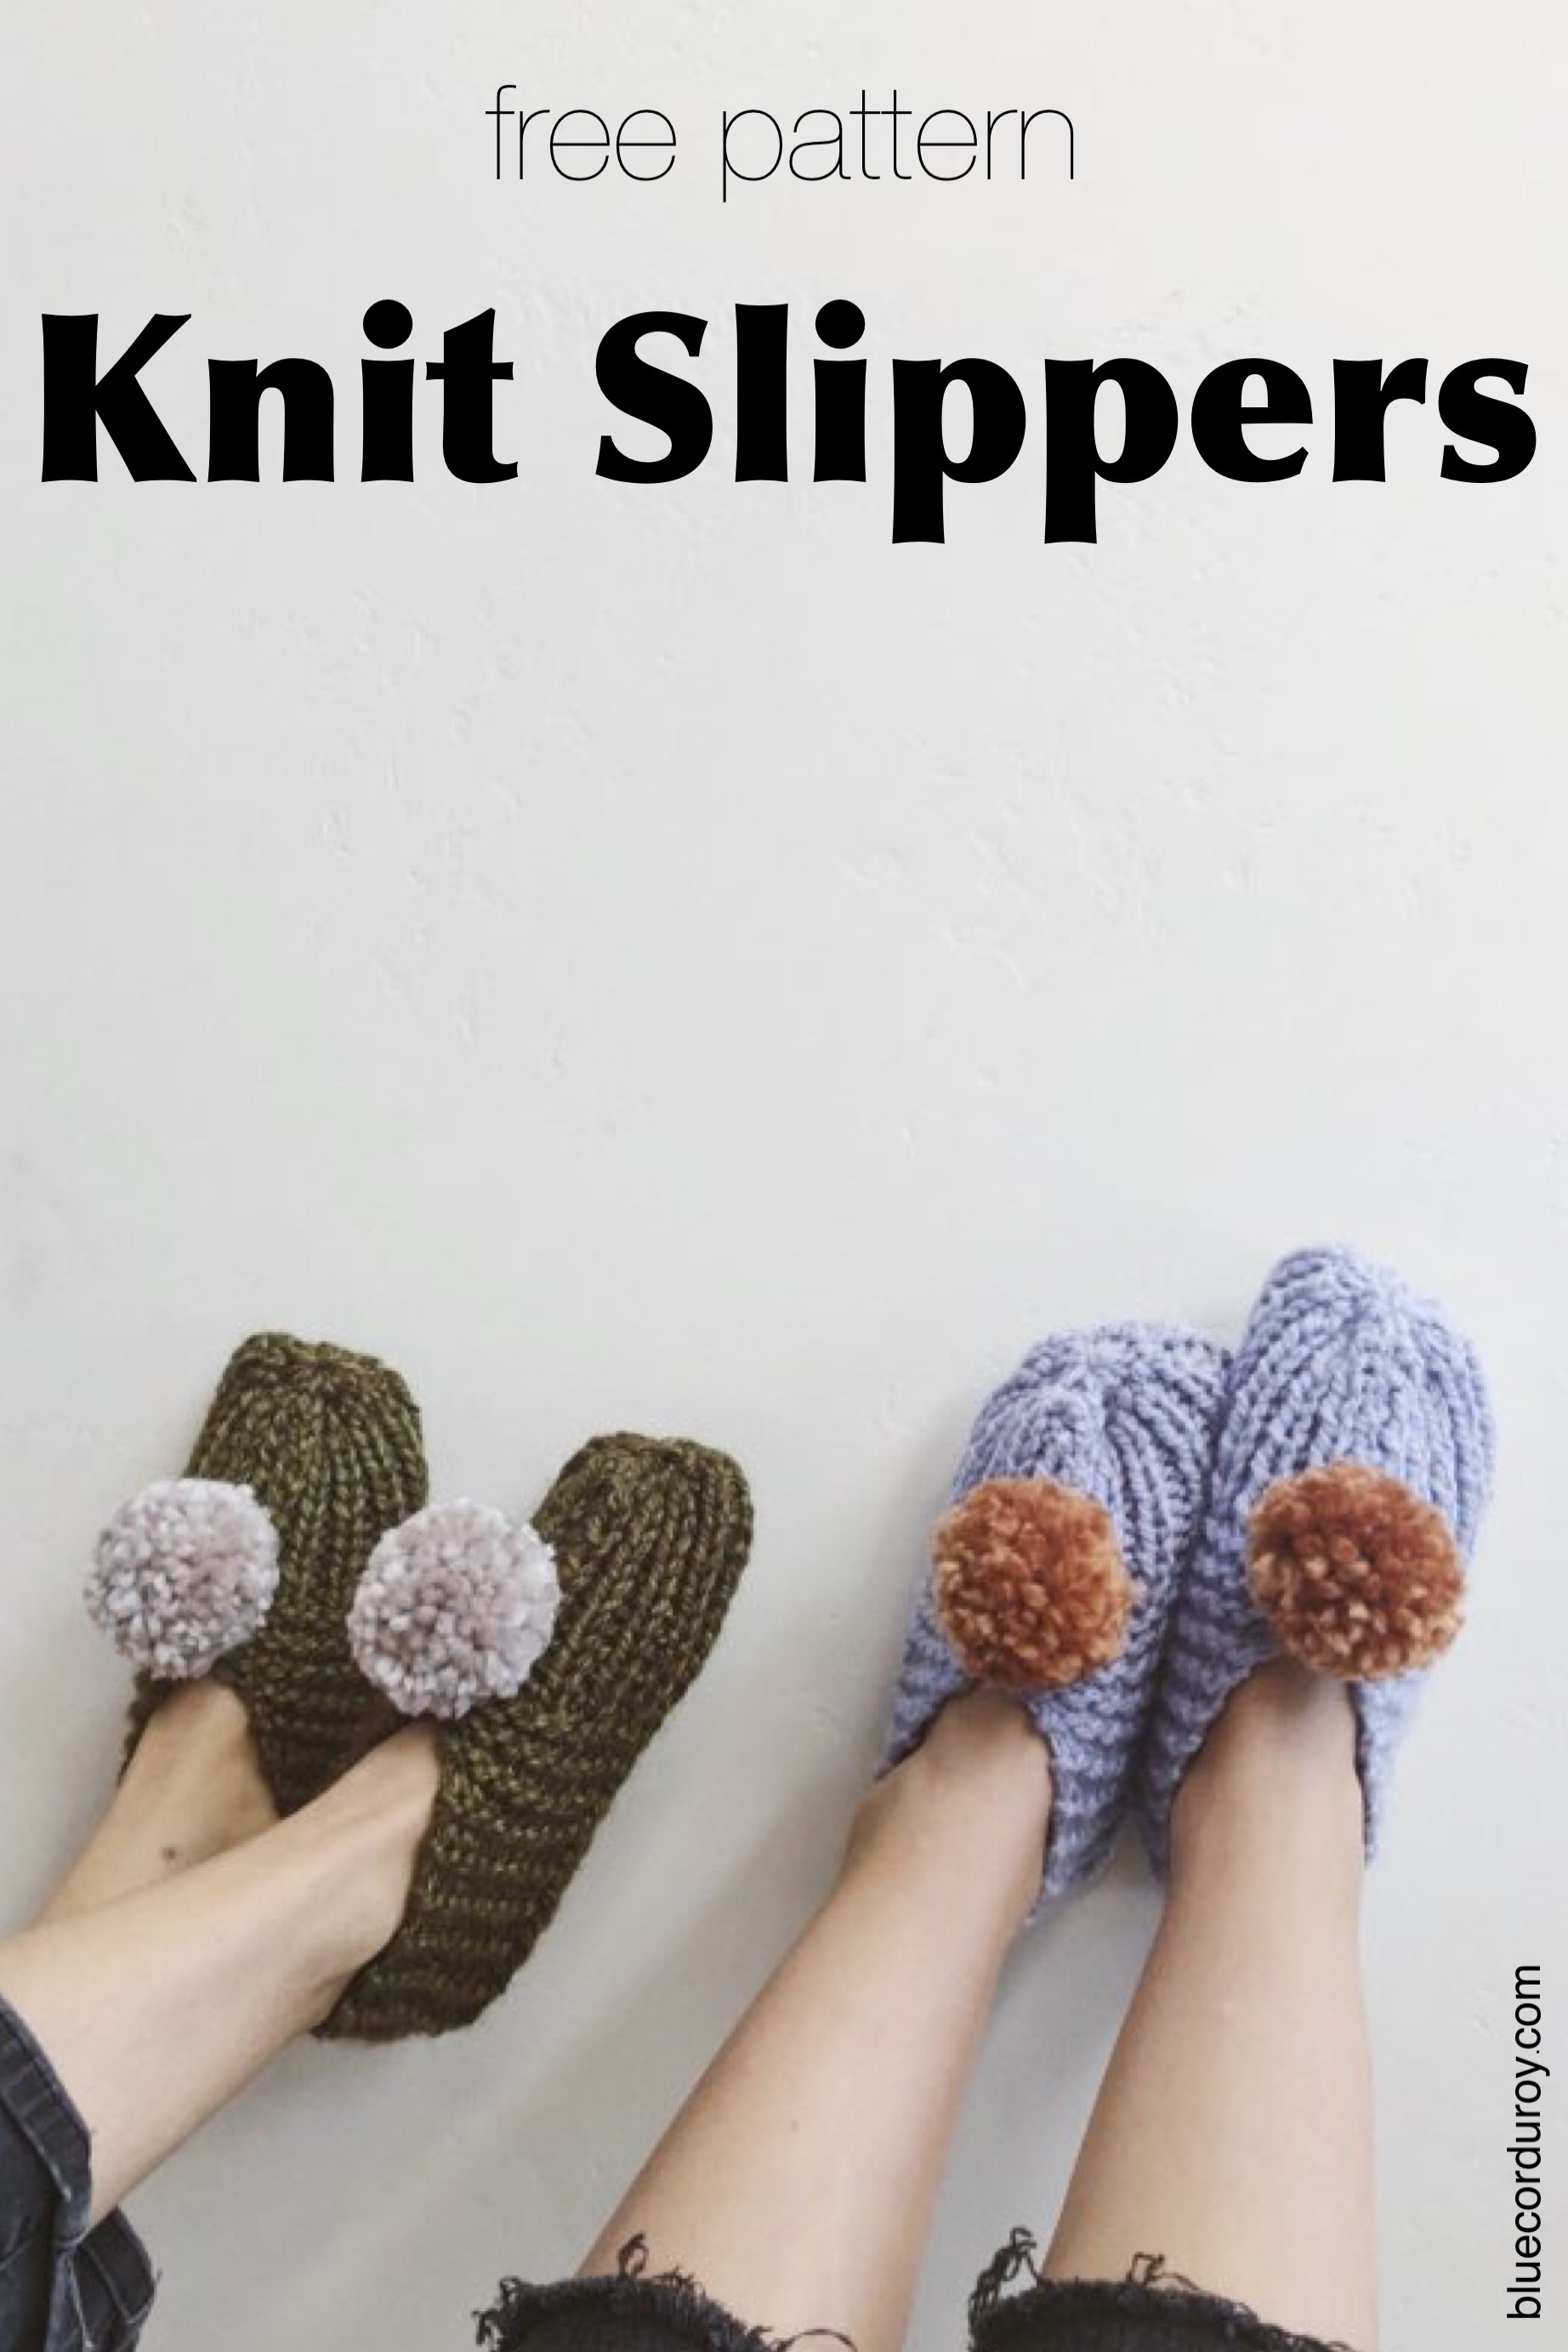 free pattern to knit your own slippers